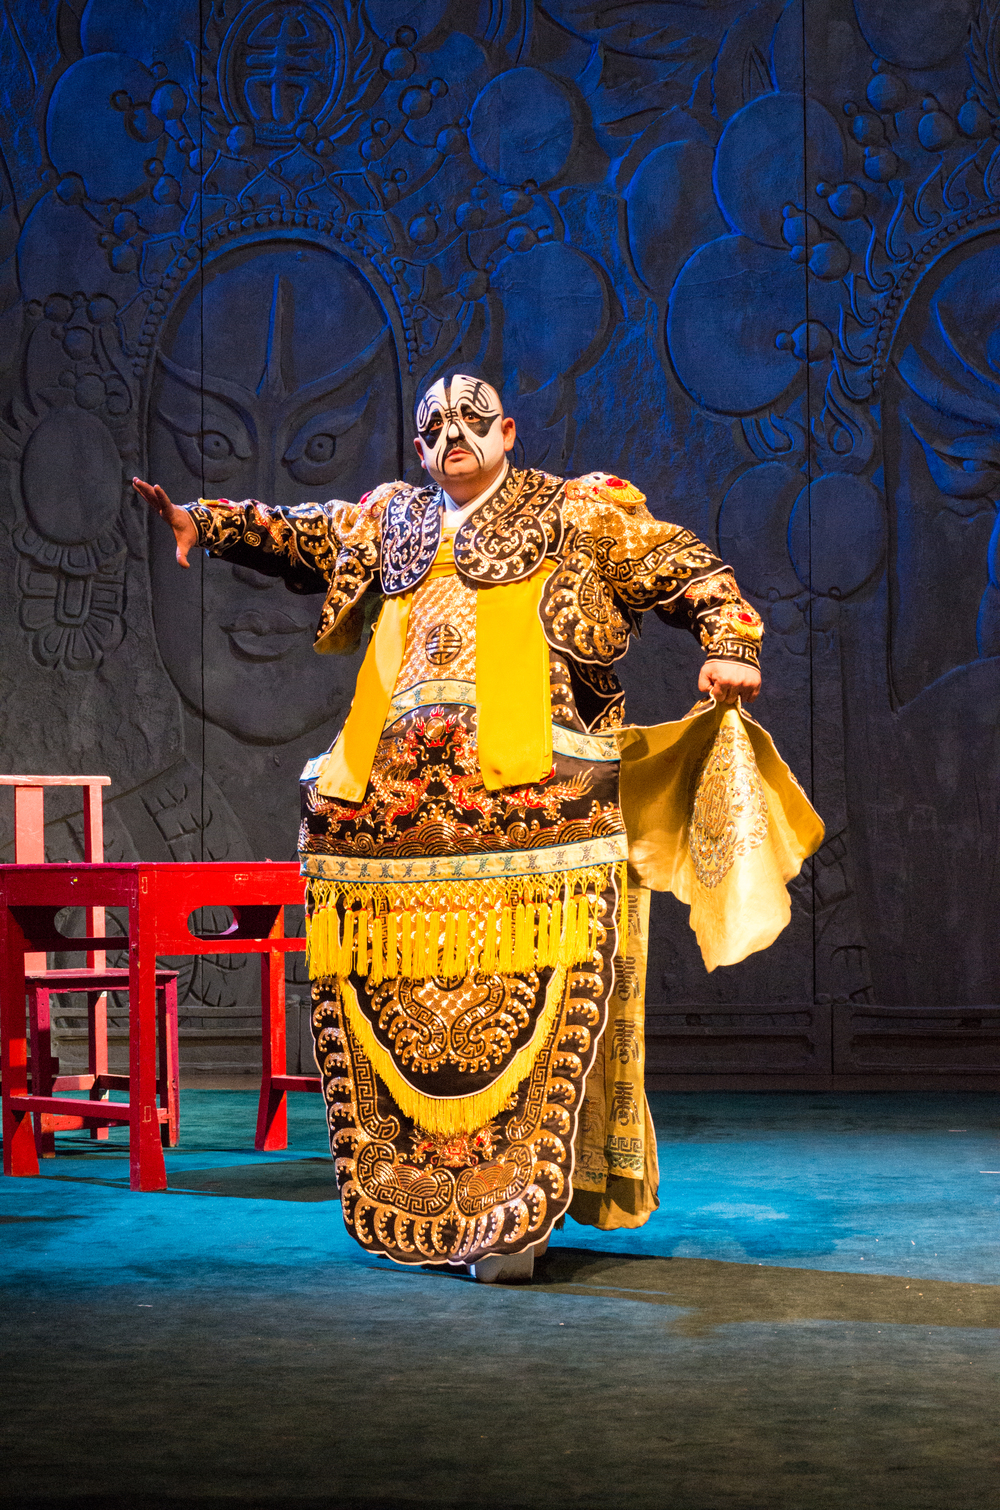 Photo: Leica X Vario, 3200 ISO at the Beijing Opera. There's no question about the quality of this camera. Good ISO performance helps compensate for the relatively slow lens. The quiet shutter makes it possible to use the camera during a theatre performance